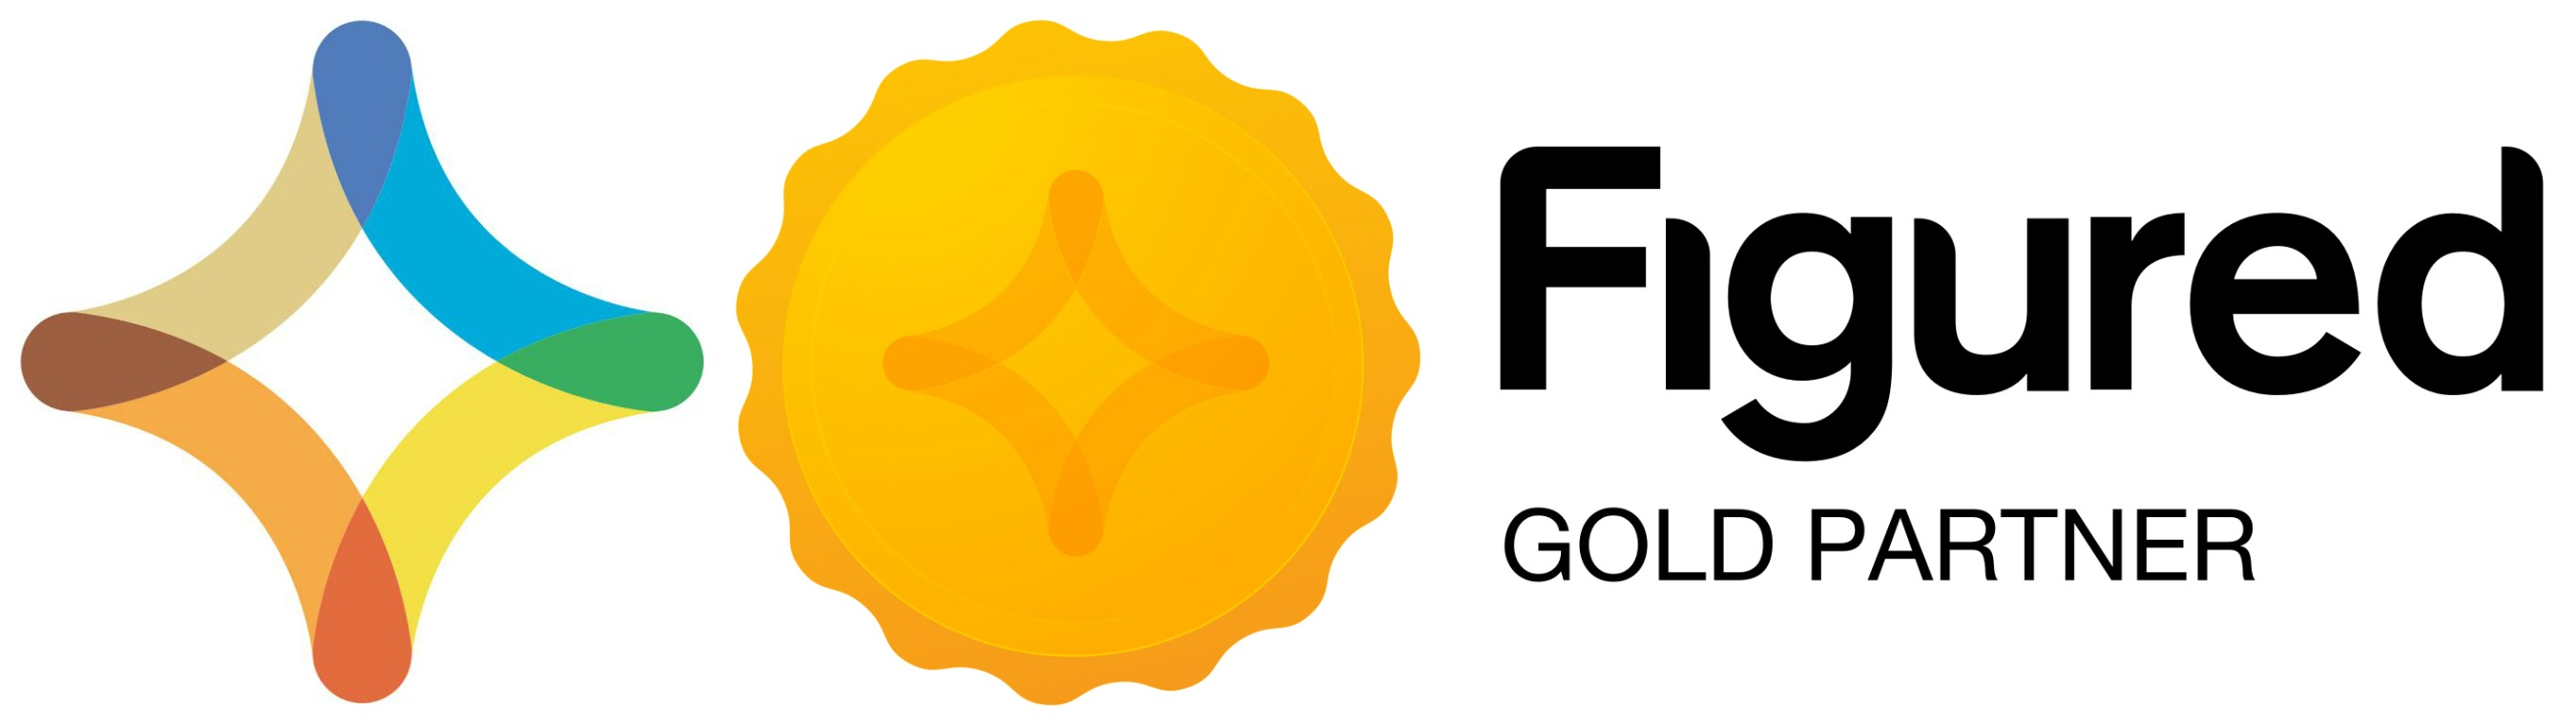 Figured Farm Management Software Gold Partner logo